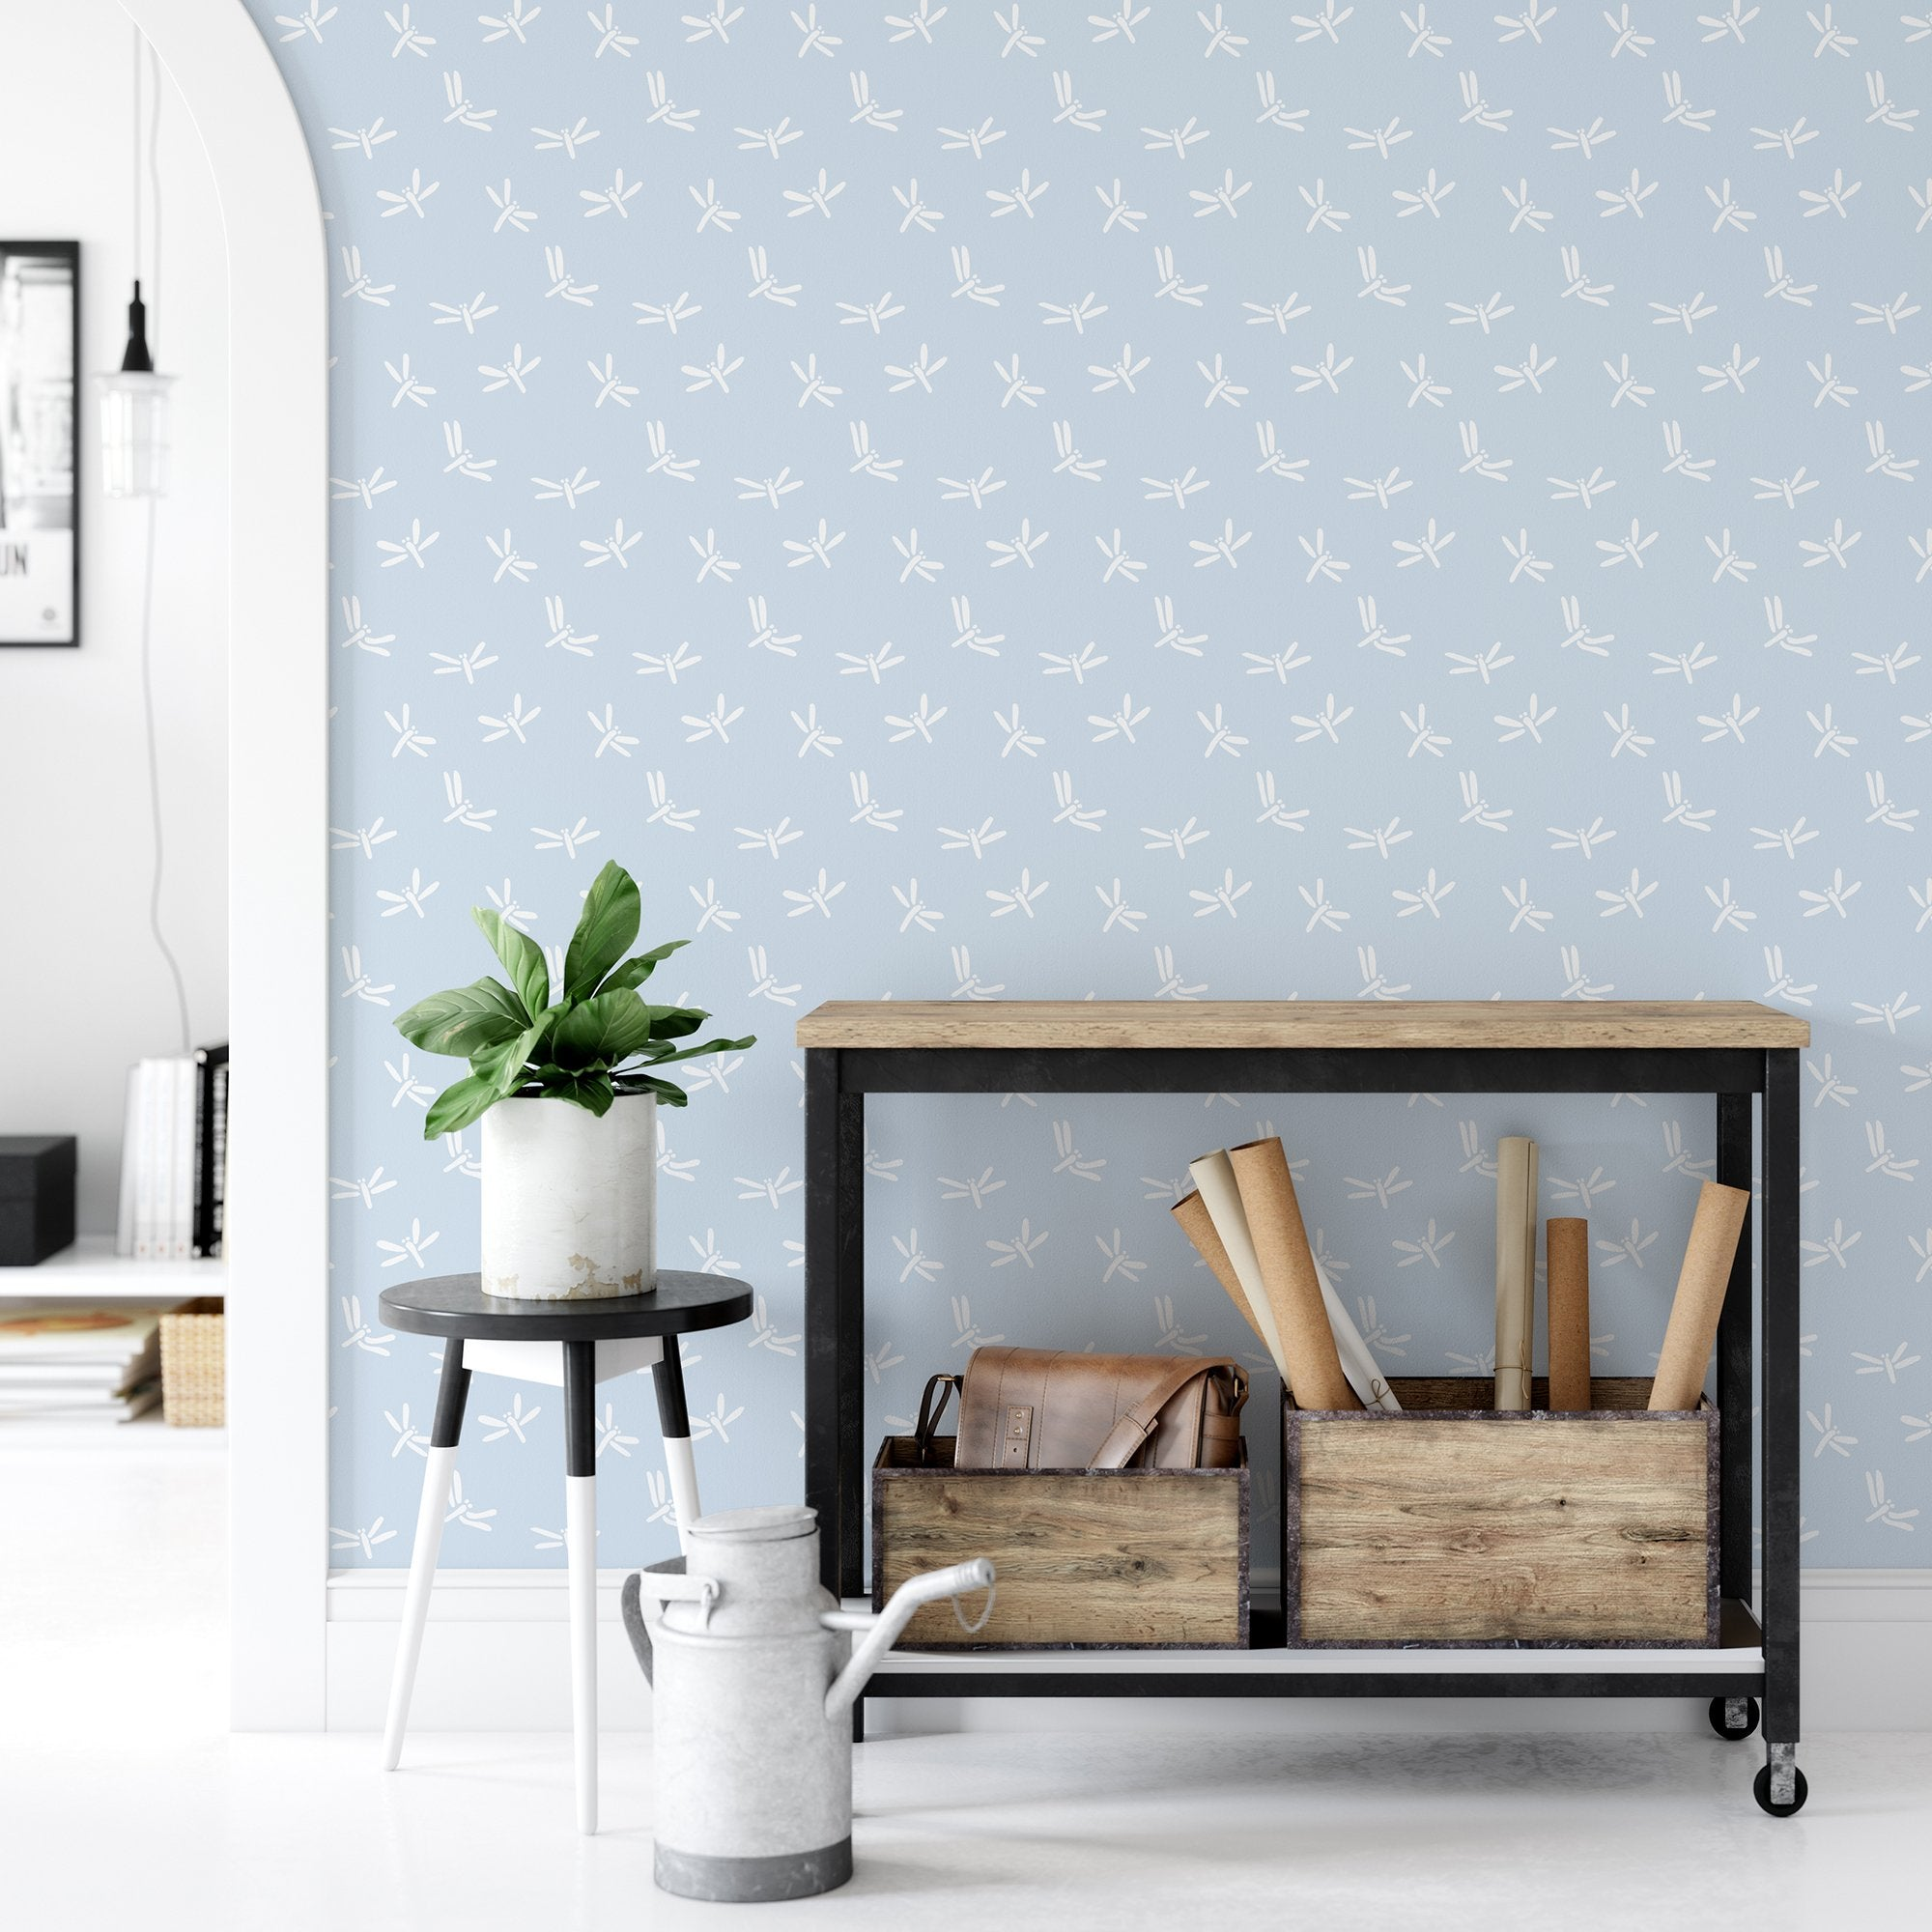 Light Blue Dragonfly Wallpaper Peel And Stick The Wallberry By